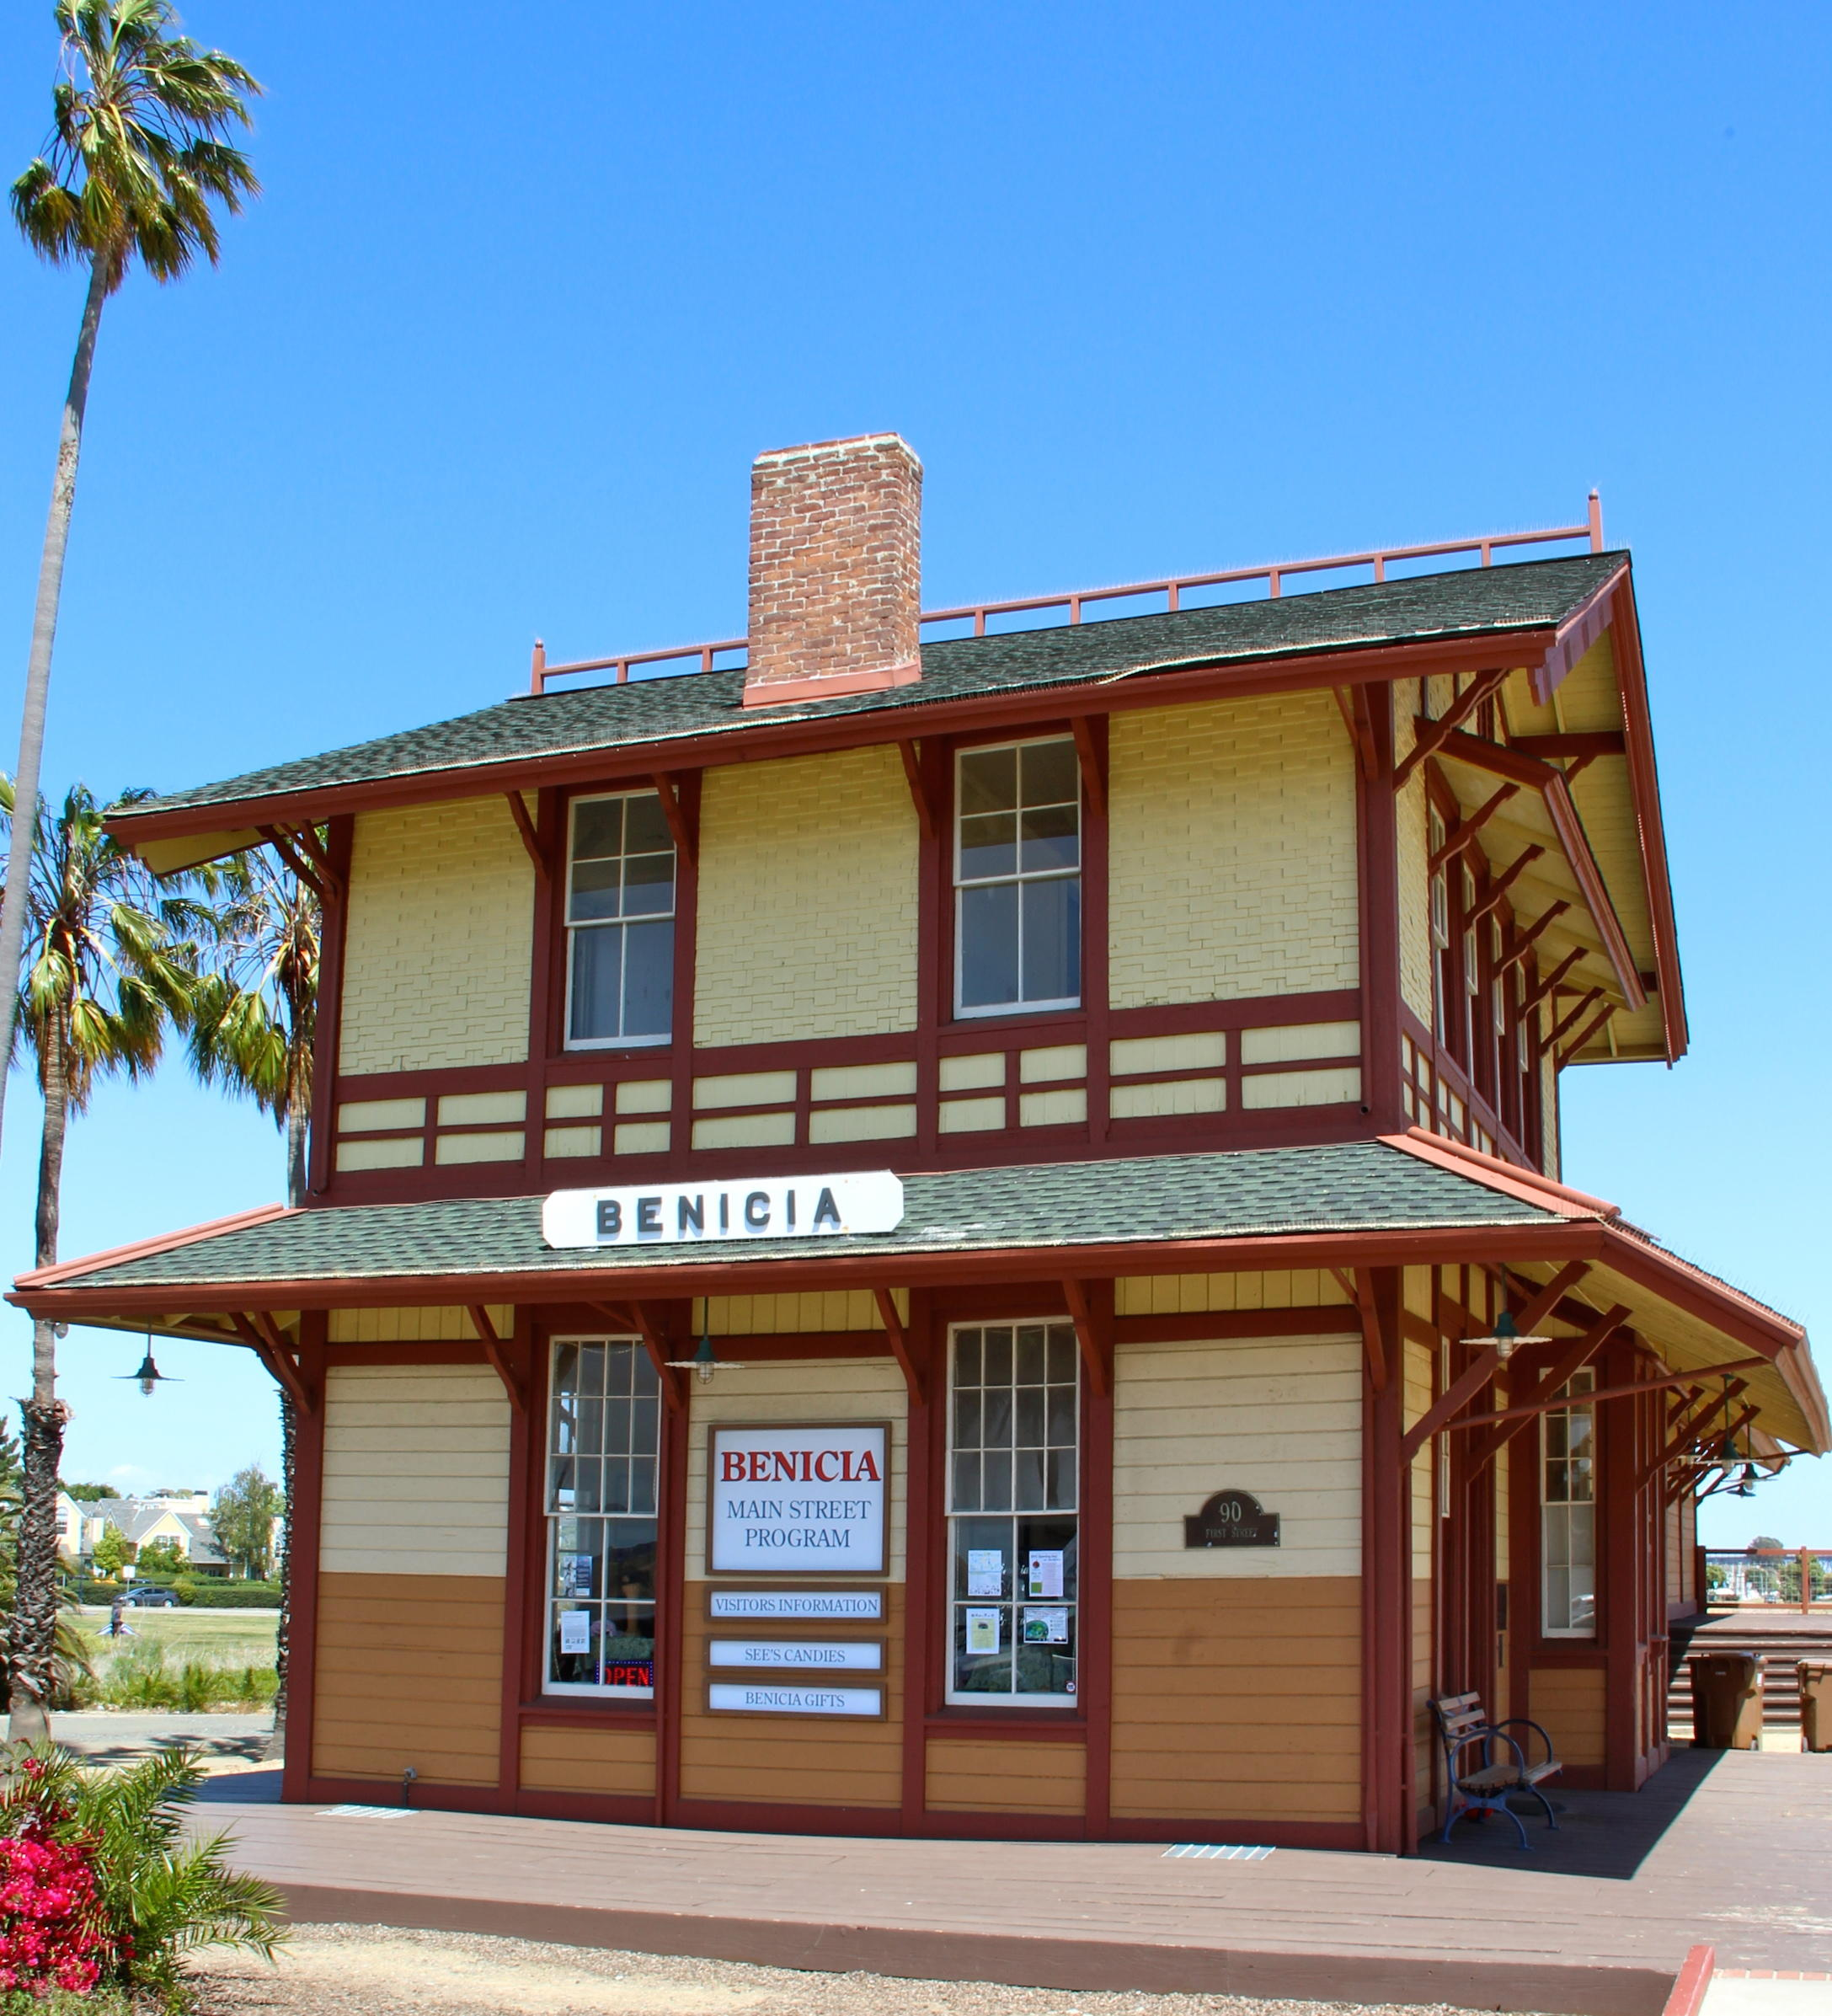 Benicia, Californiau0027s Historic Train Depot  The One Time Terminus Of The  Transcontinental Railroad Today Serves As The Office For Benicia Main  Street ...